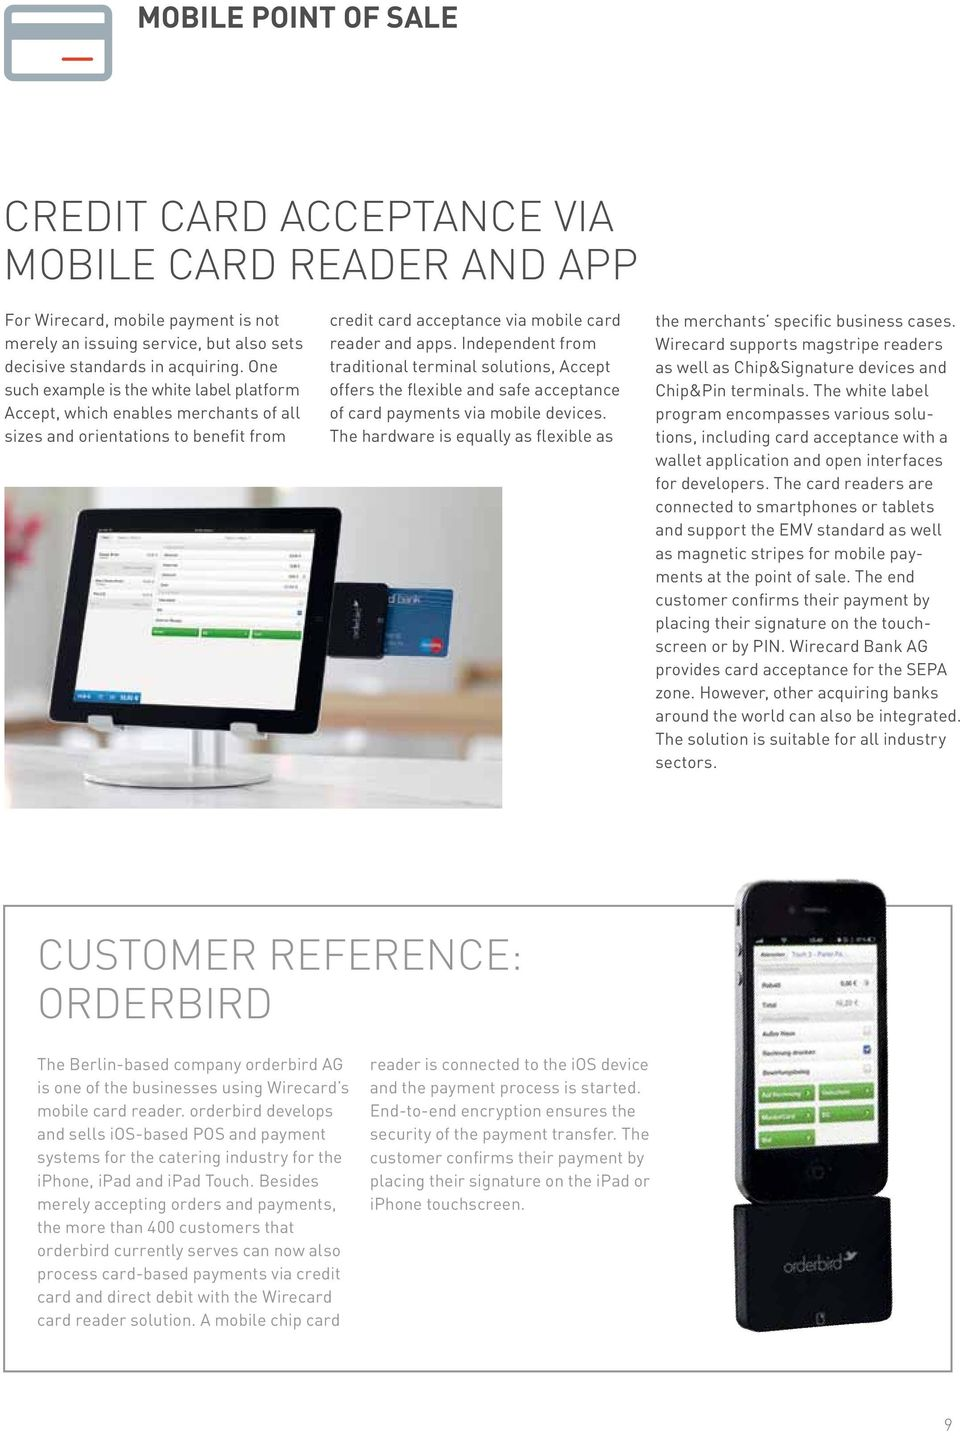 Independent from traditional terminal solutions, Accept offers the flexible and safe acceptance of card payments via mobile devices.